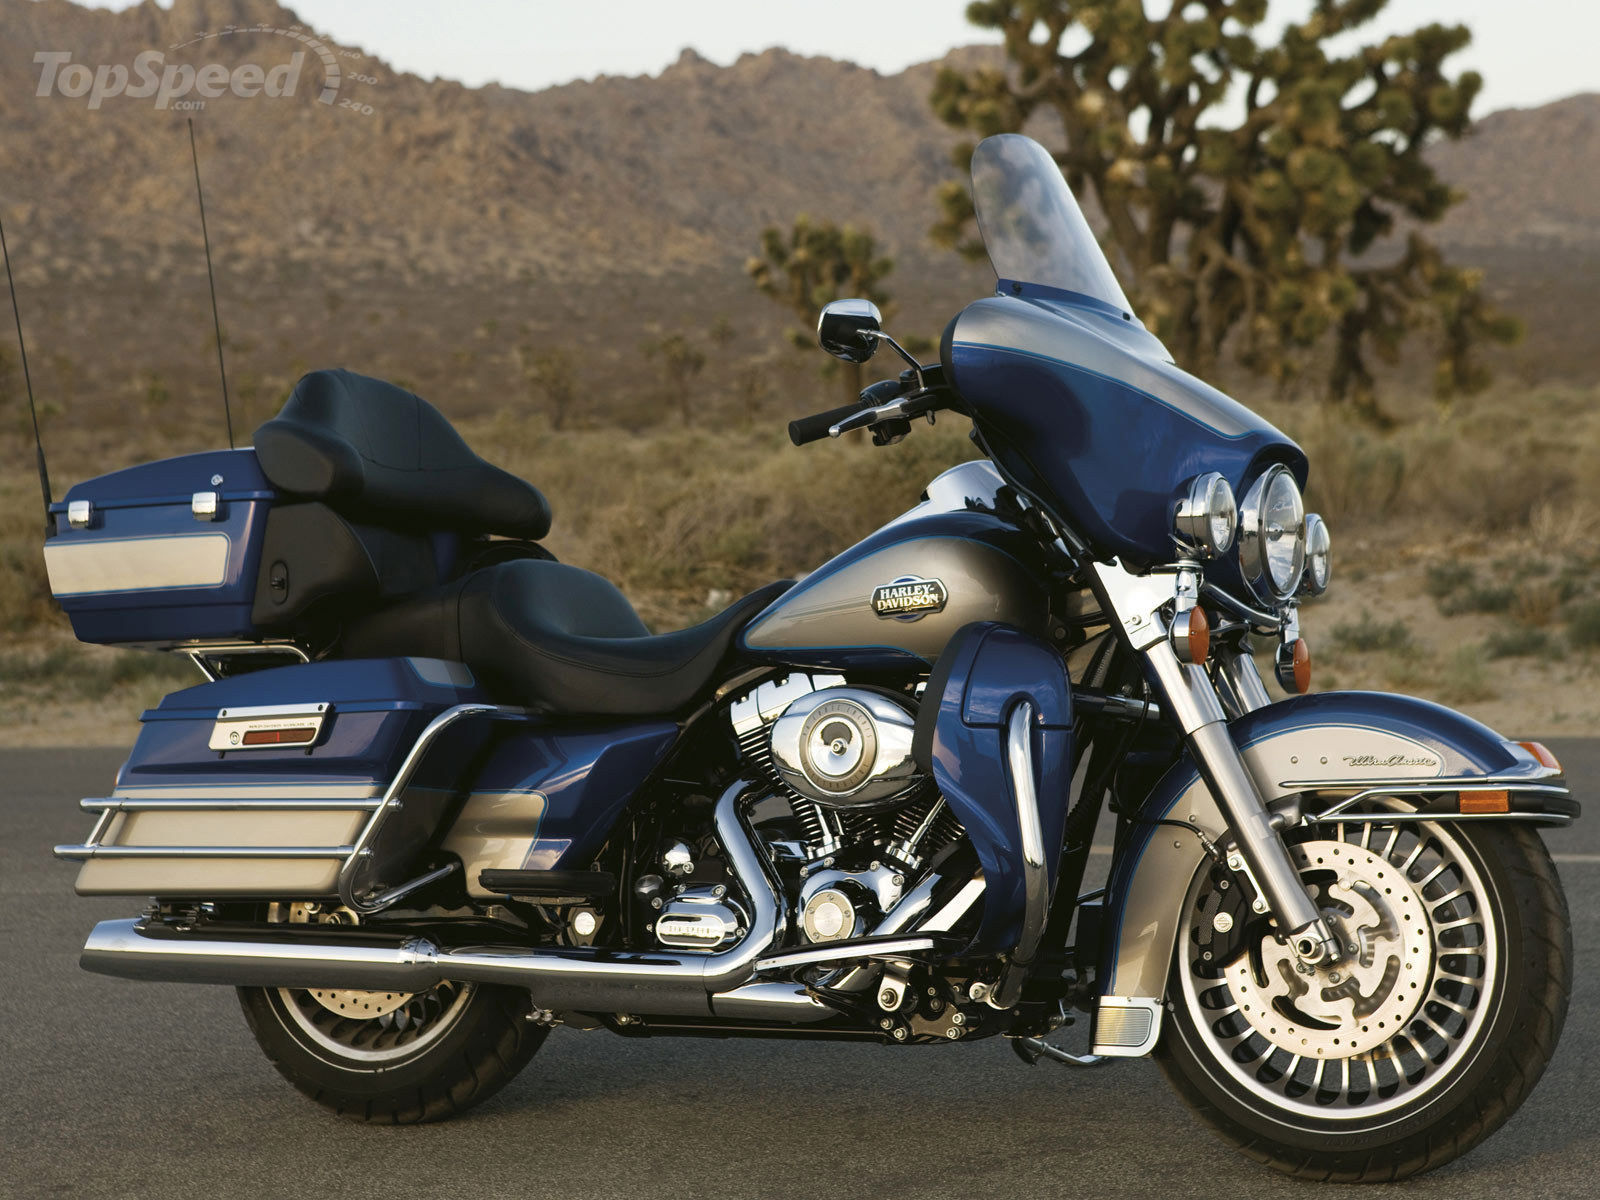 Harley-Davidson FLHTC Electra Glide Classic 2002 pics #17771